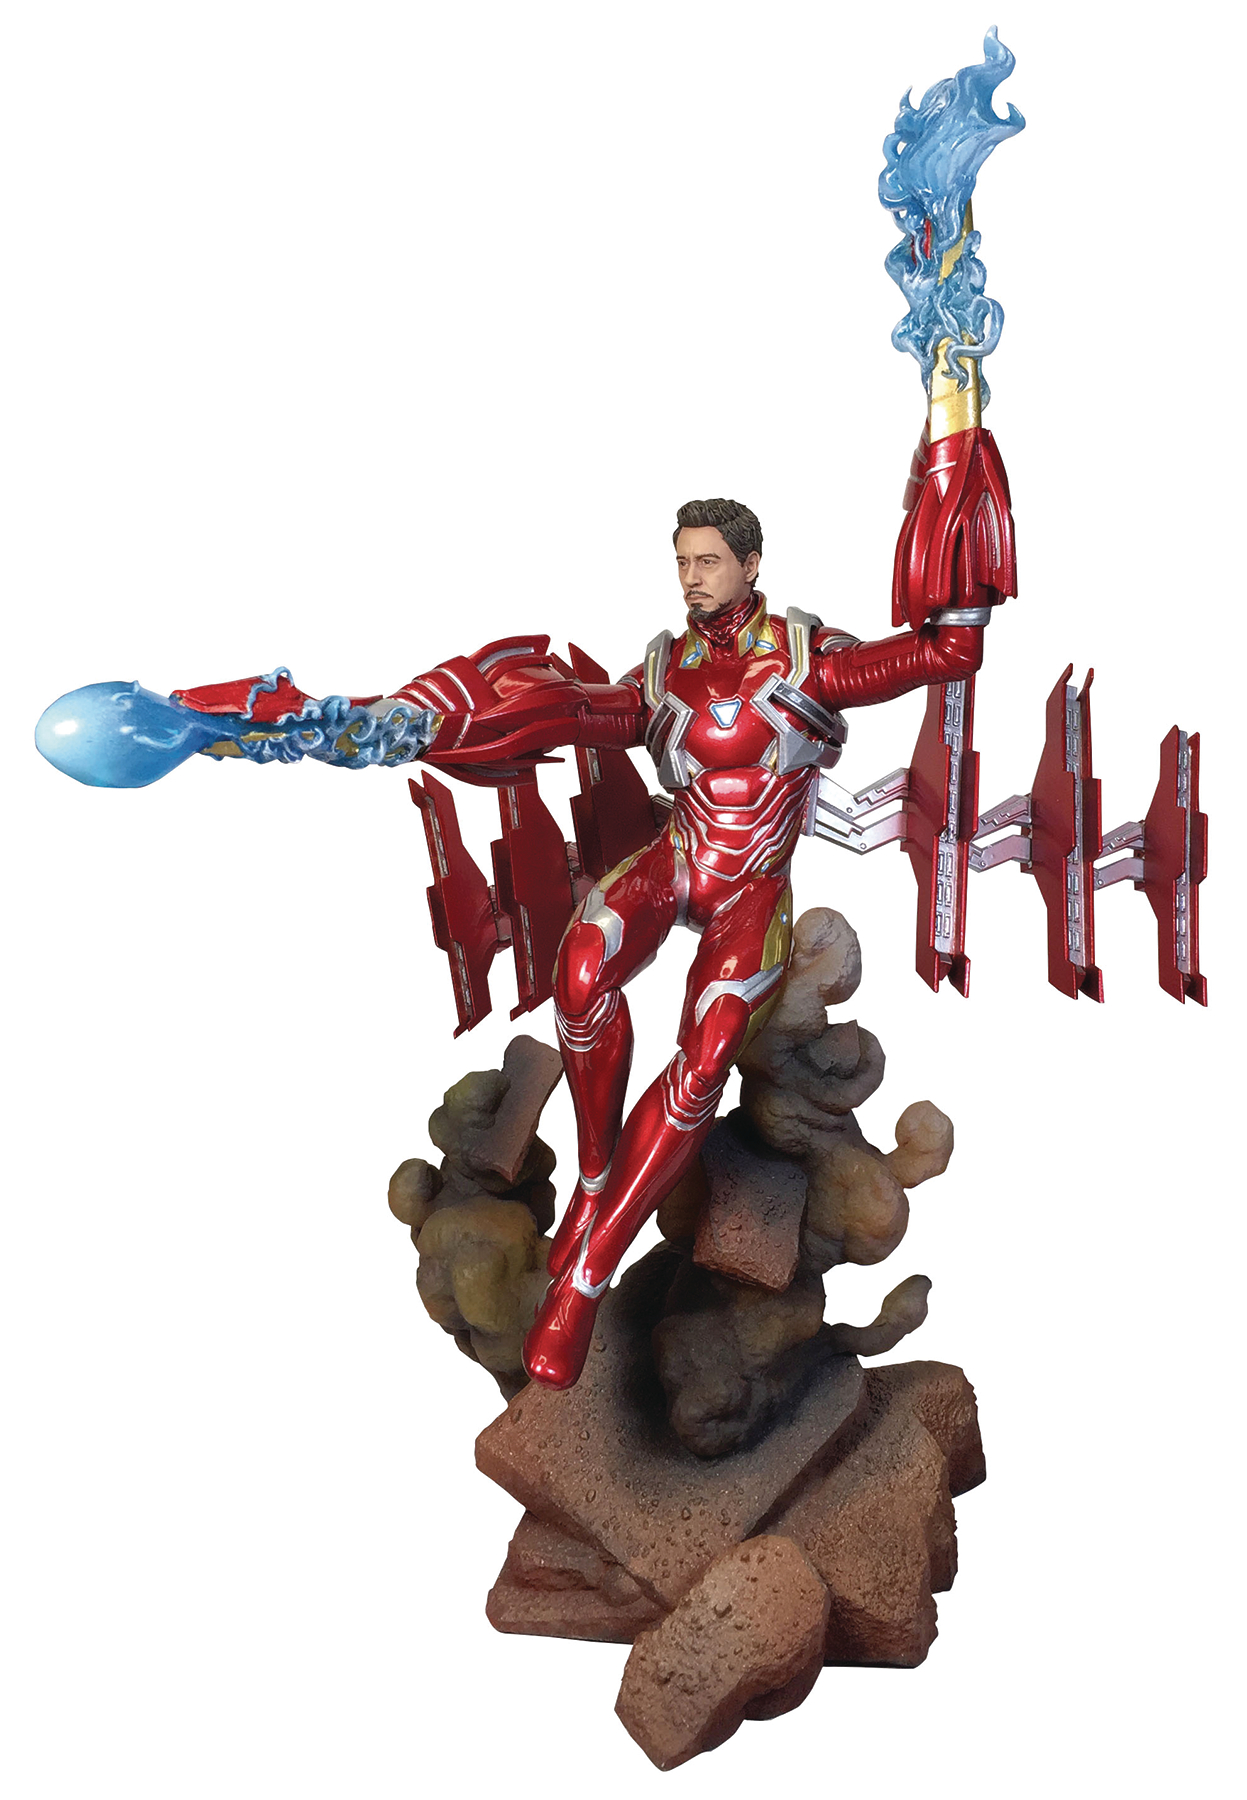 MARVEL GALLERY AVENGERS 3 UNMASKED IRON MAN MK50 DLX PVC FIG